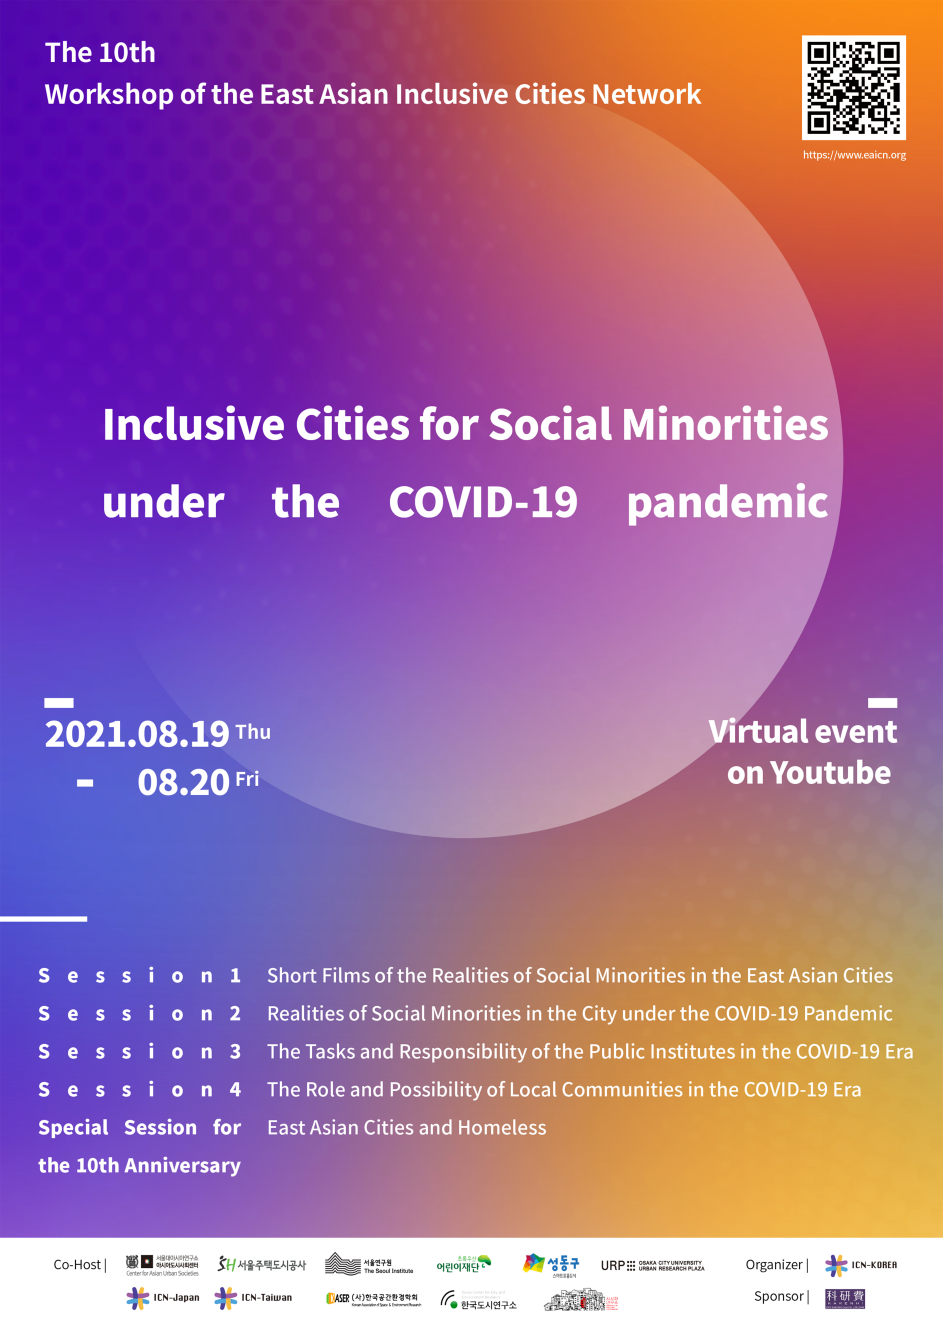 The 10th Virtual Seoul Workshop of the East Asian Inclusive Cities Network (EA-ICN)